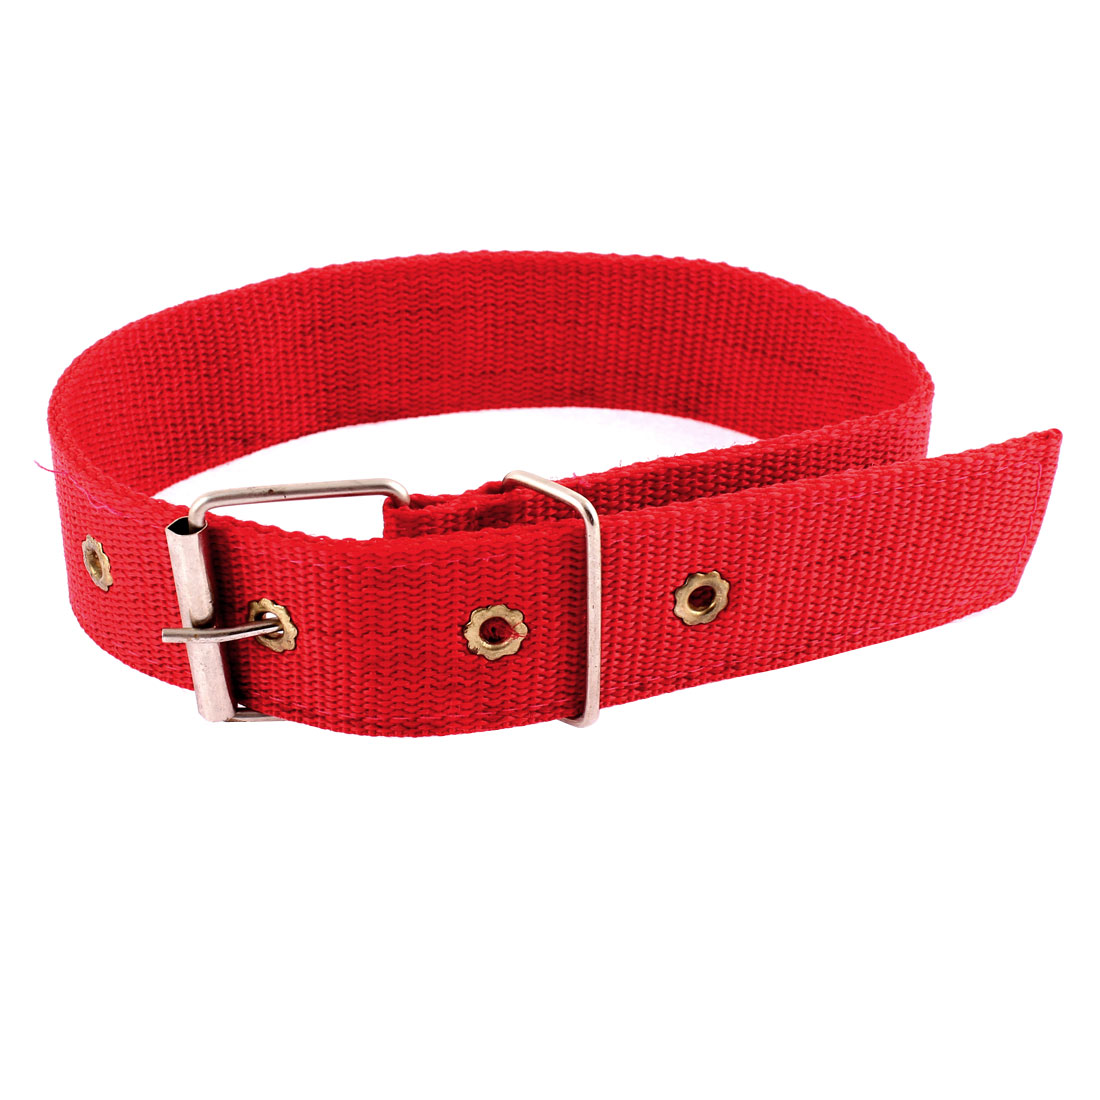 Pet Dog Dual Layer Metal Buckle Adjustable Lead Harness Belt Collar Red